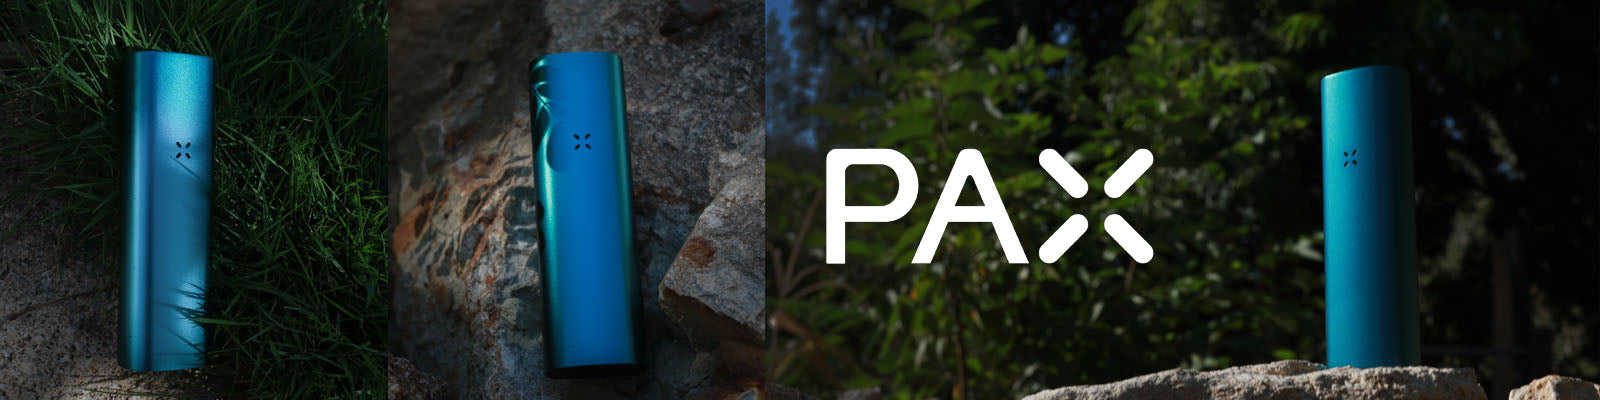 Pax Vaporizers UK Authorized Seller  Free Shipping